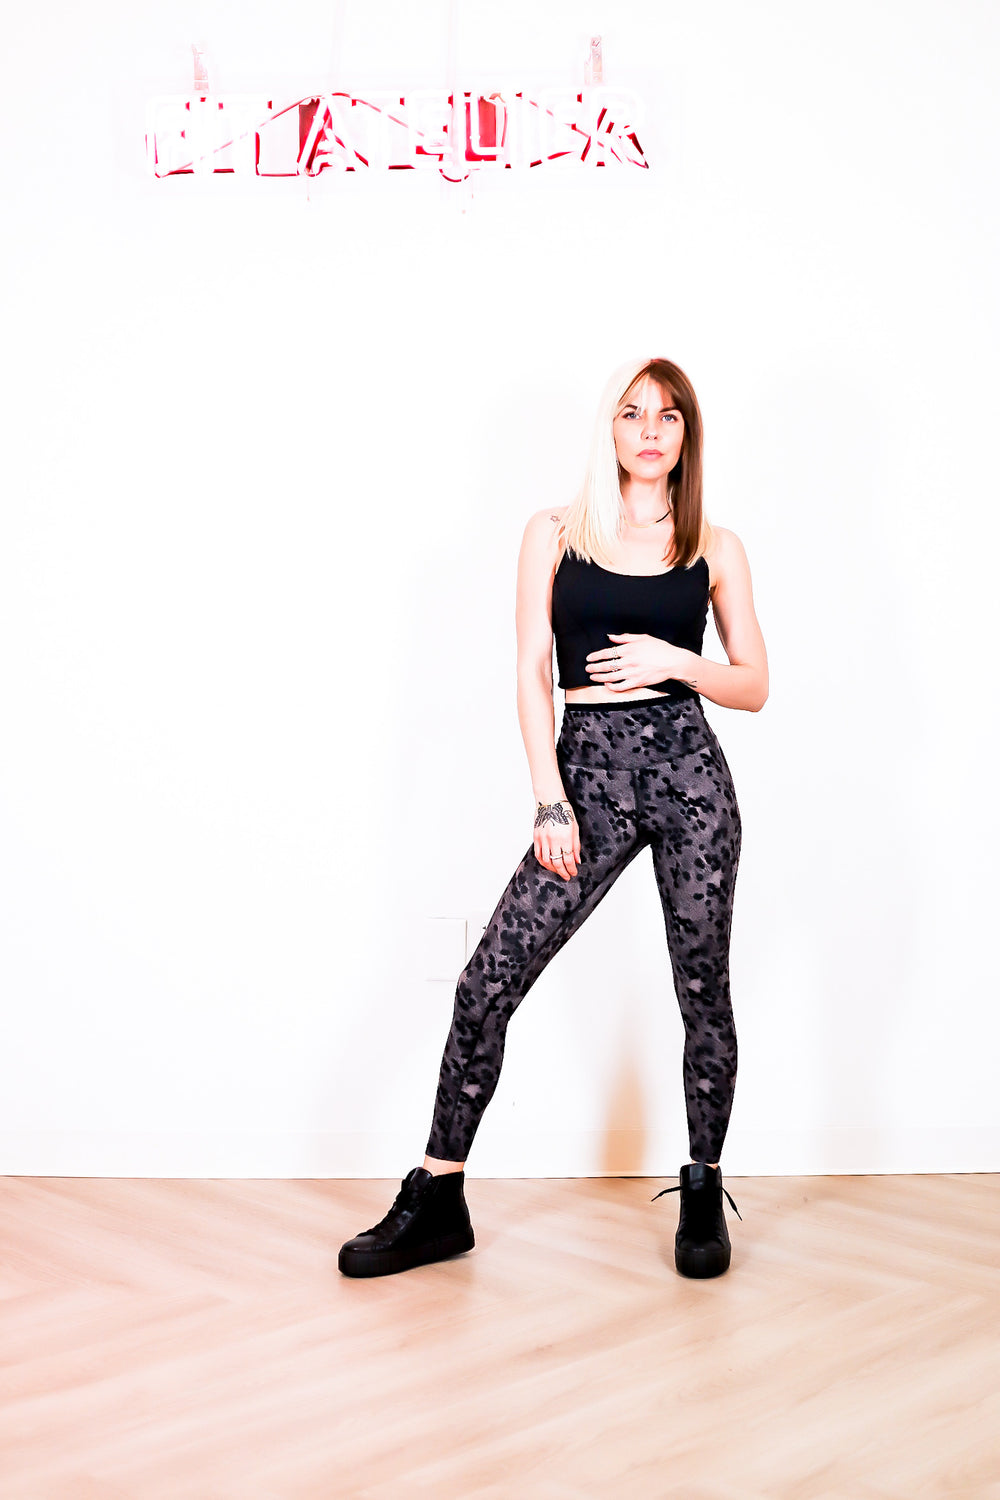 Dual Waistband Airweight 7/8 Legging in Black Animal Print